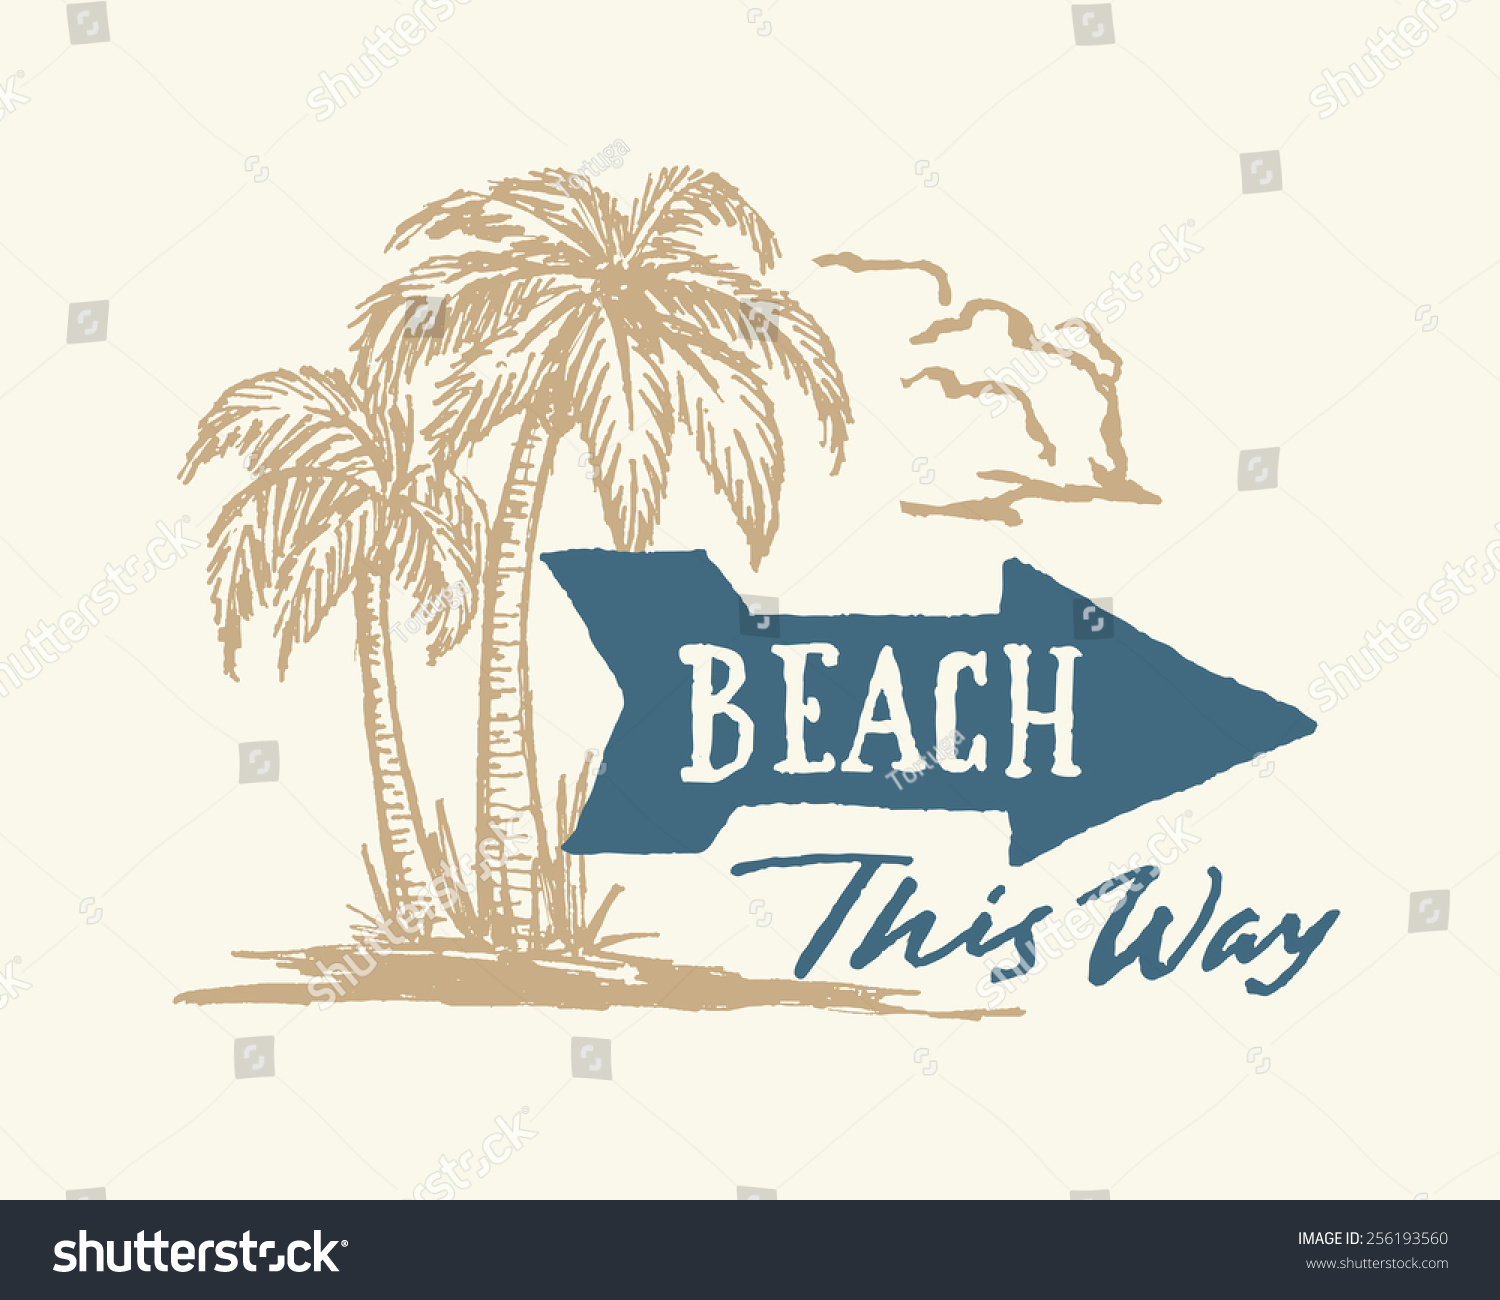 Vintage Hand Drawn Beach Sign With Arrow And Palm Trees Ink Drawing